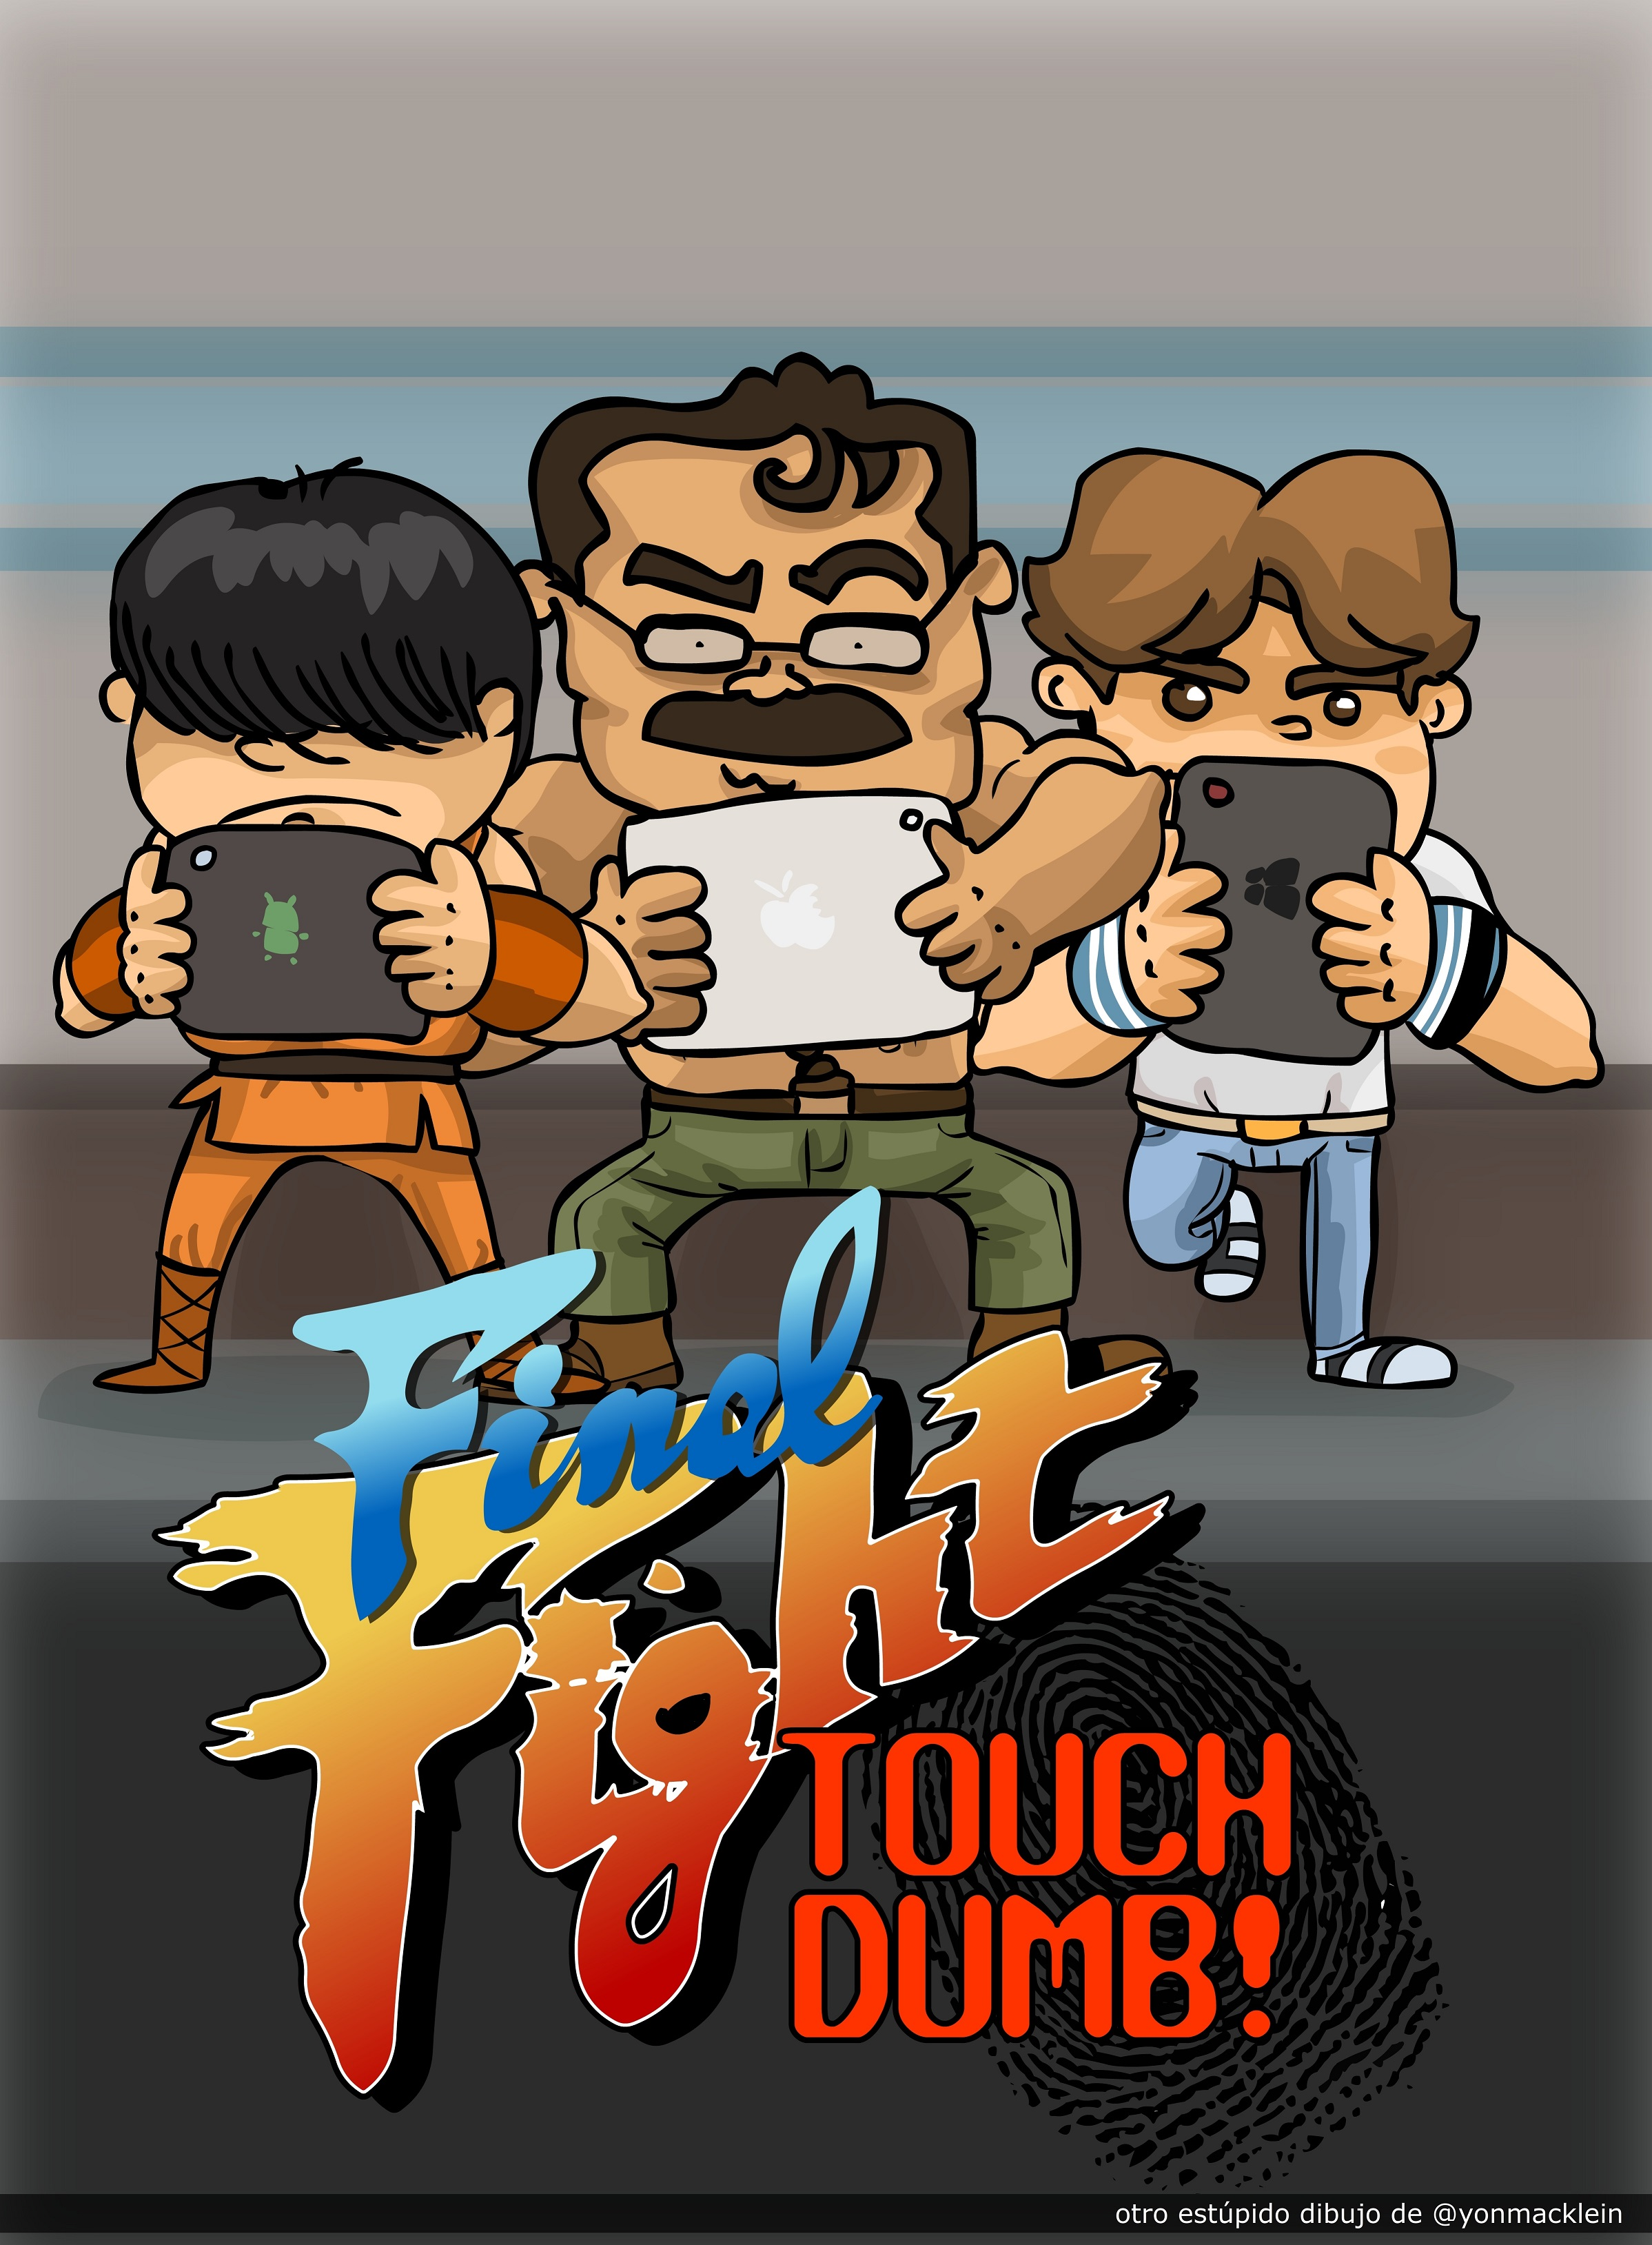 Retro Final Fight Touch Dumb!